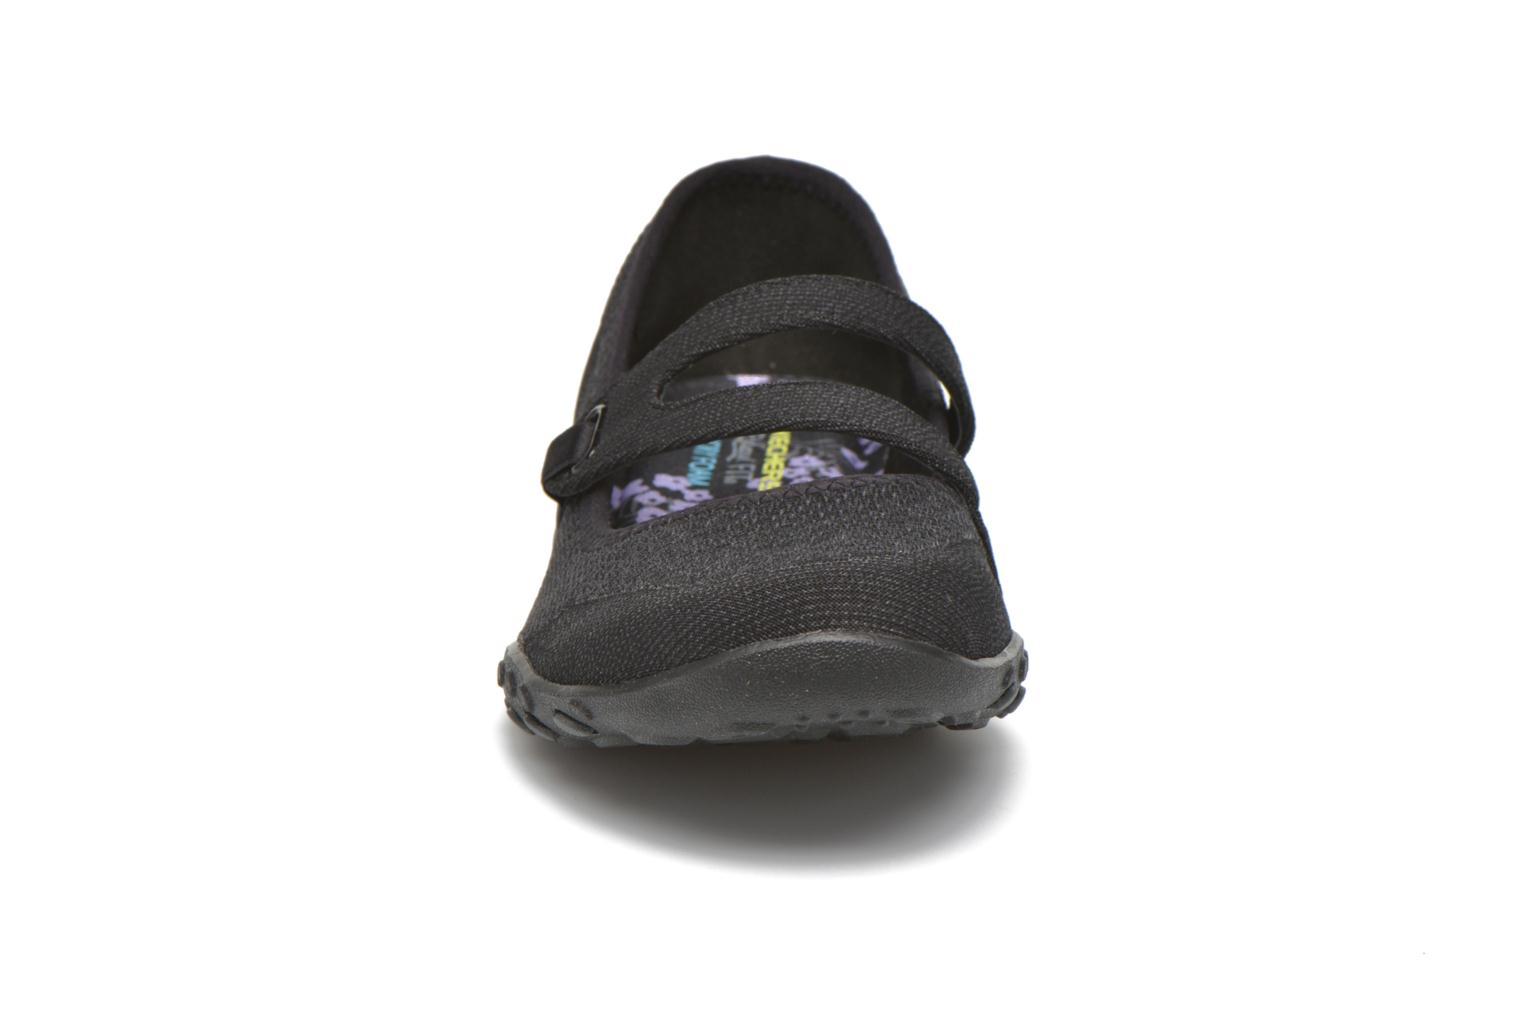 Bailarinas Skechers Breathe-Easy - Lucky Negro vista del modelo